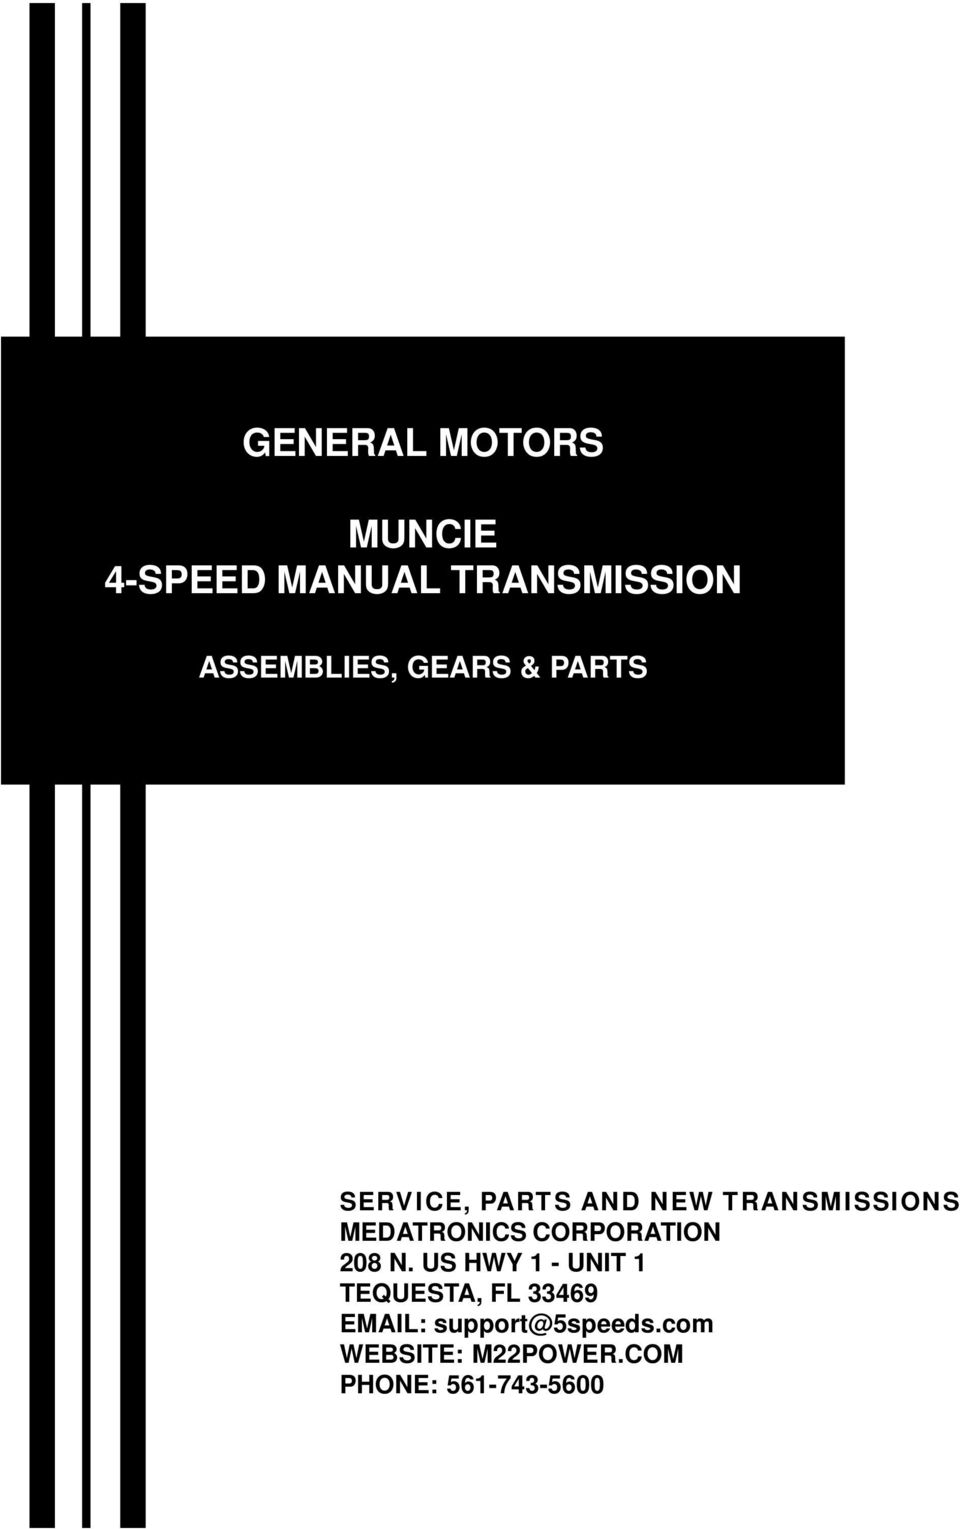 GENERAL MOTORS MUNCIE 4-SPEED MANUAL TRANSMISSION - PDF